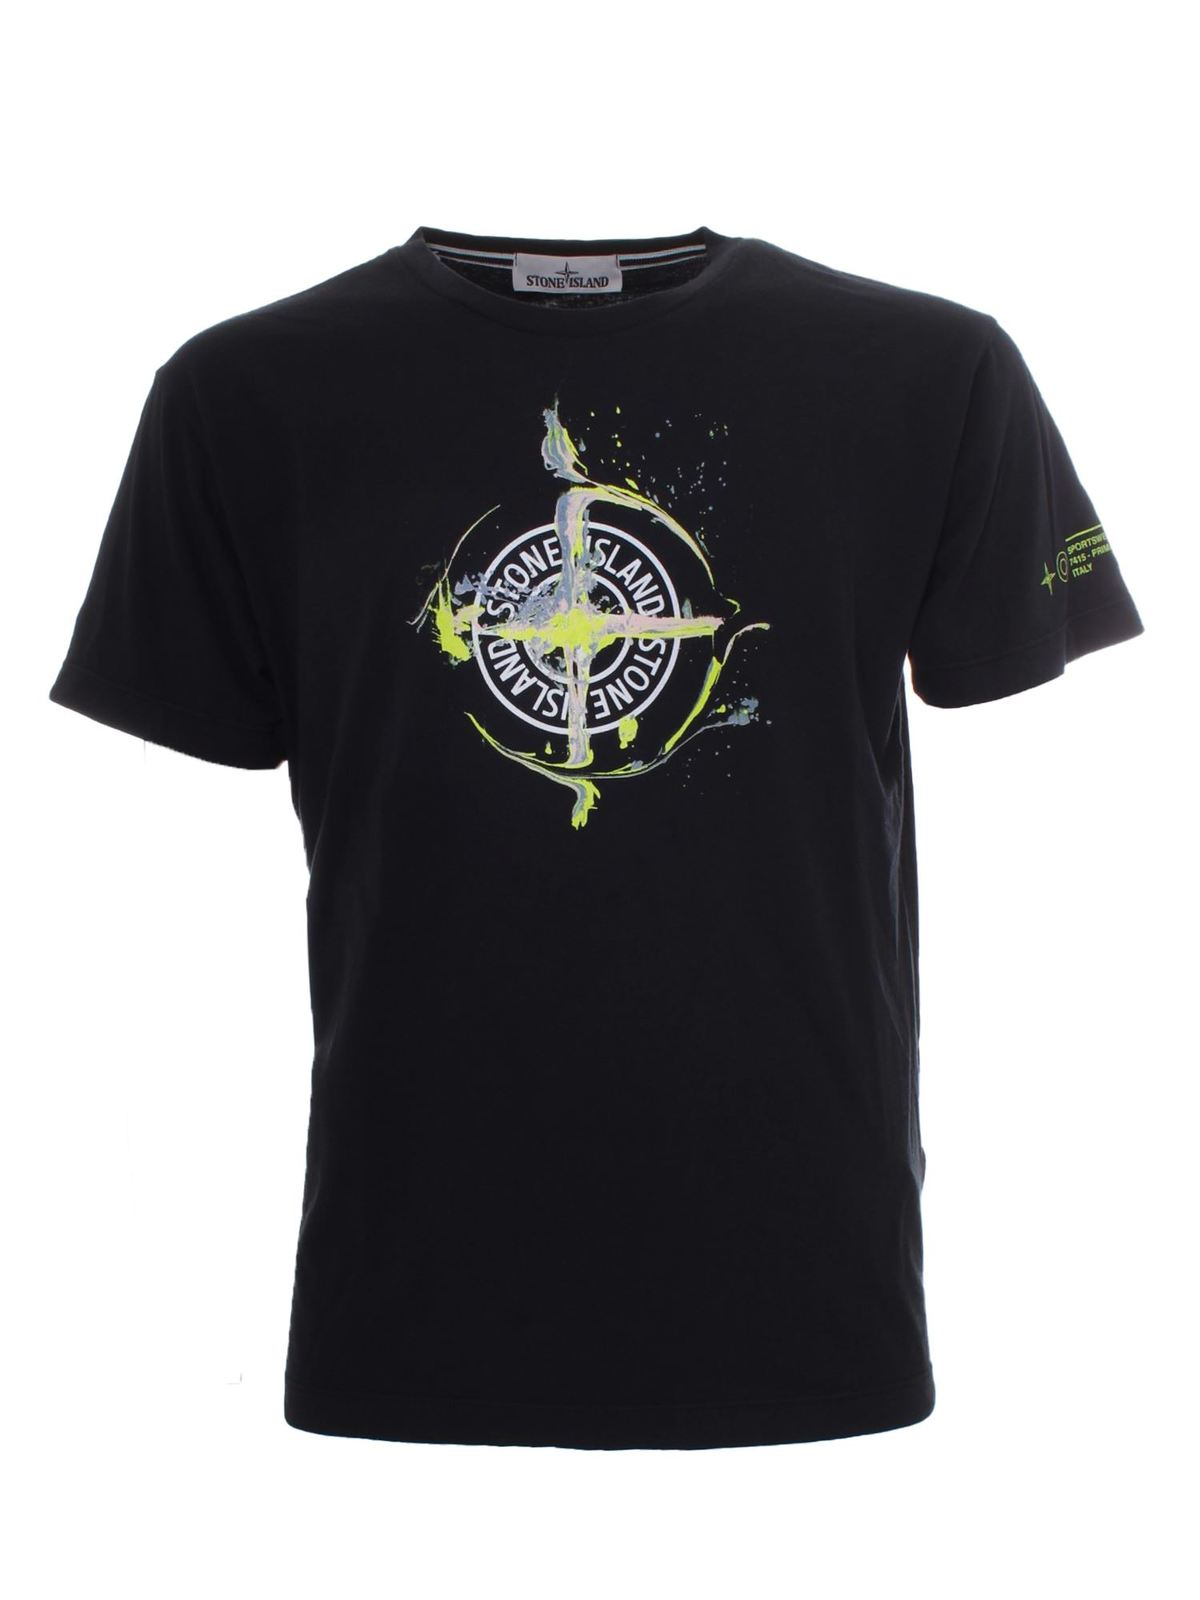 Stone Island MARBLE ONE T-SHIRT IN BLUE